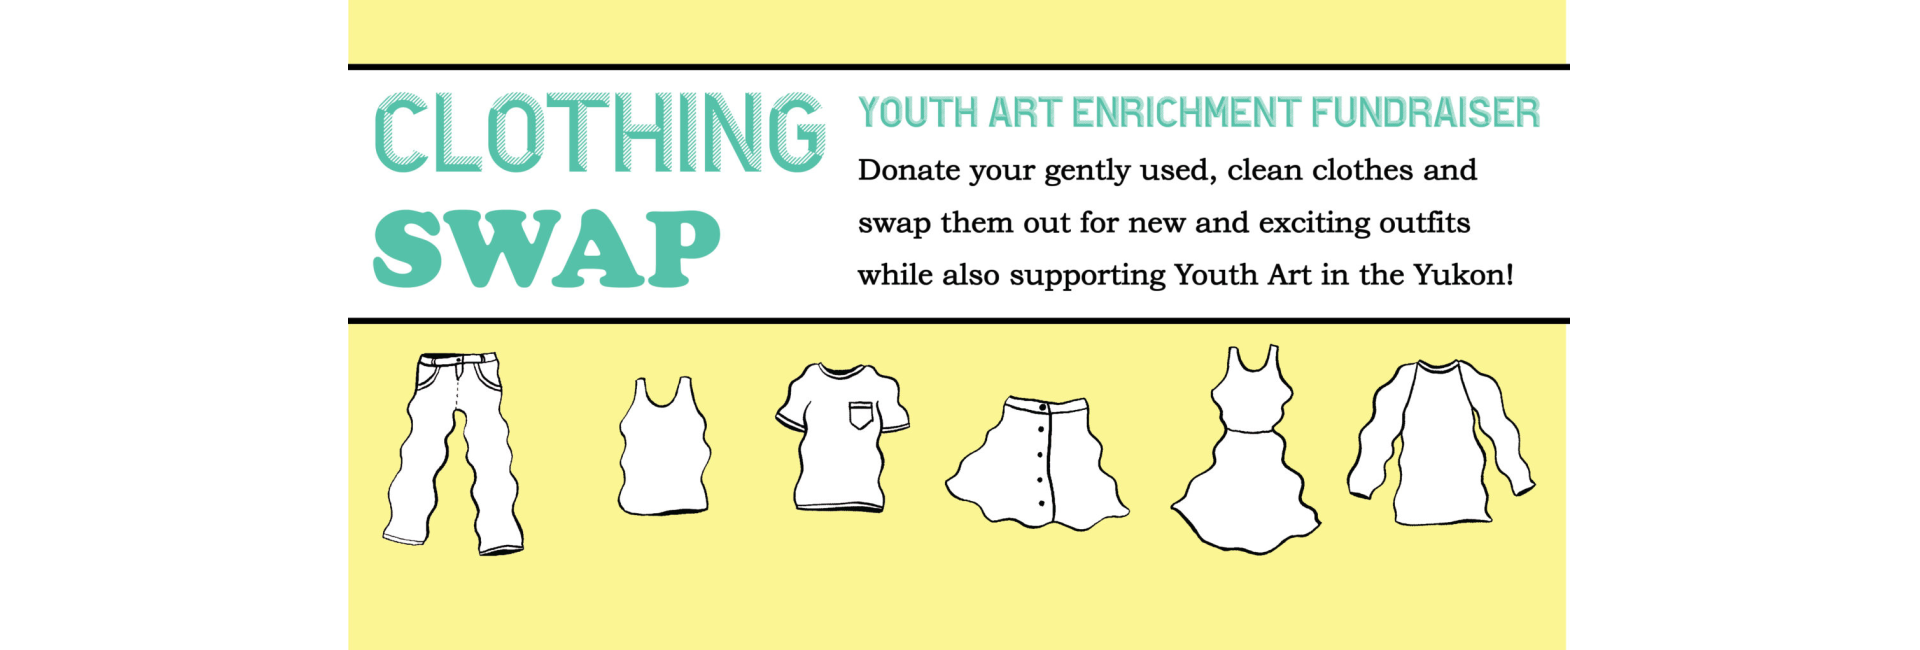 Clothing Swap! Feb 16th! A Youth Art Enrichment Fundraiser!